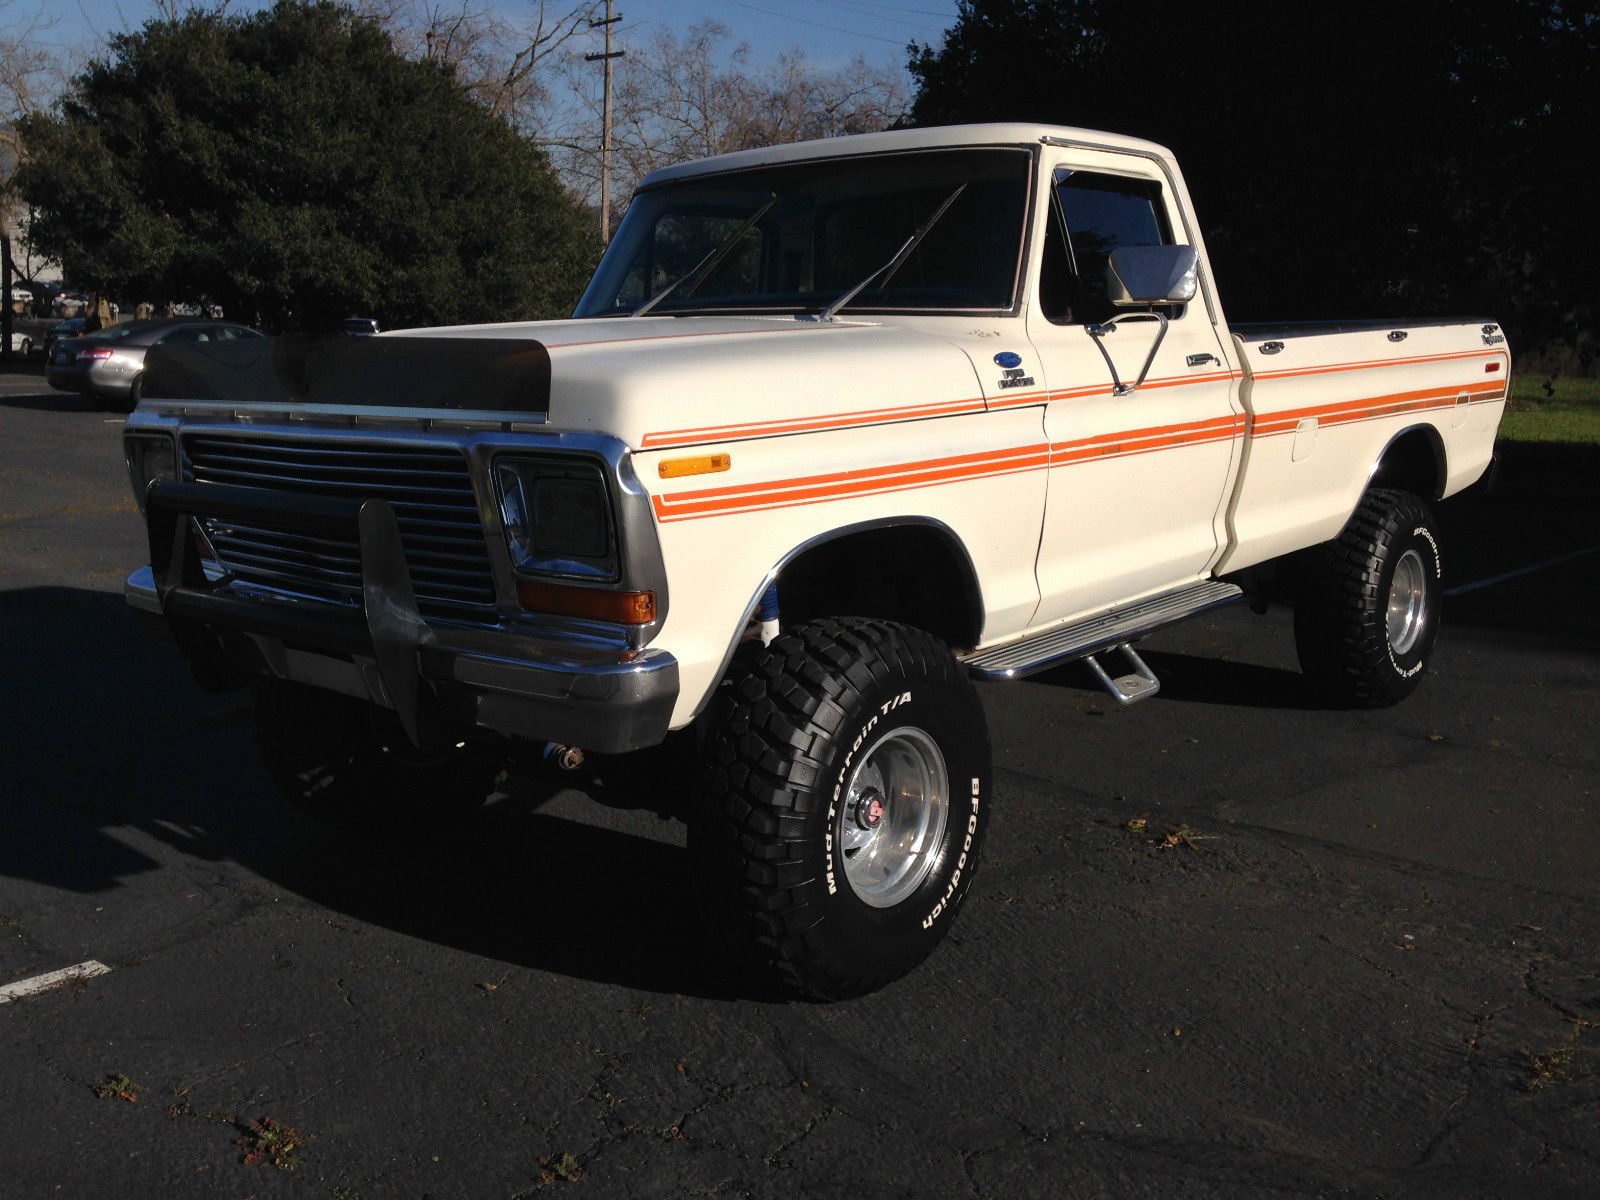 1979 ford f 150 4x4 explorer lifted longbed pickup very nice for sale in petaluma. Black Bedroom Furniture Sets. Home Design Ideas